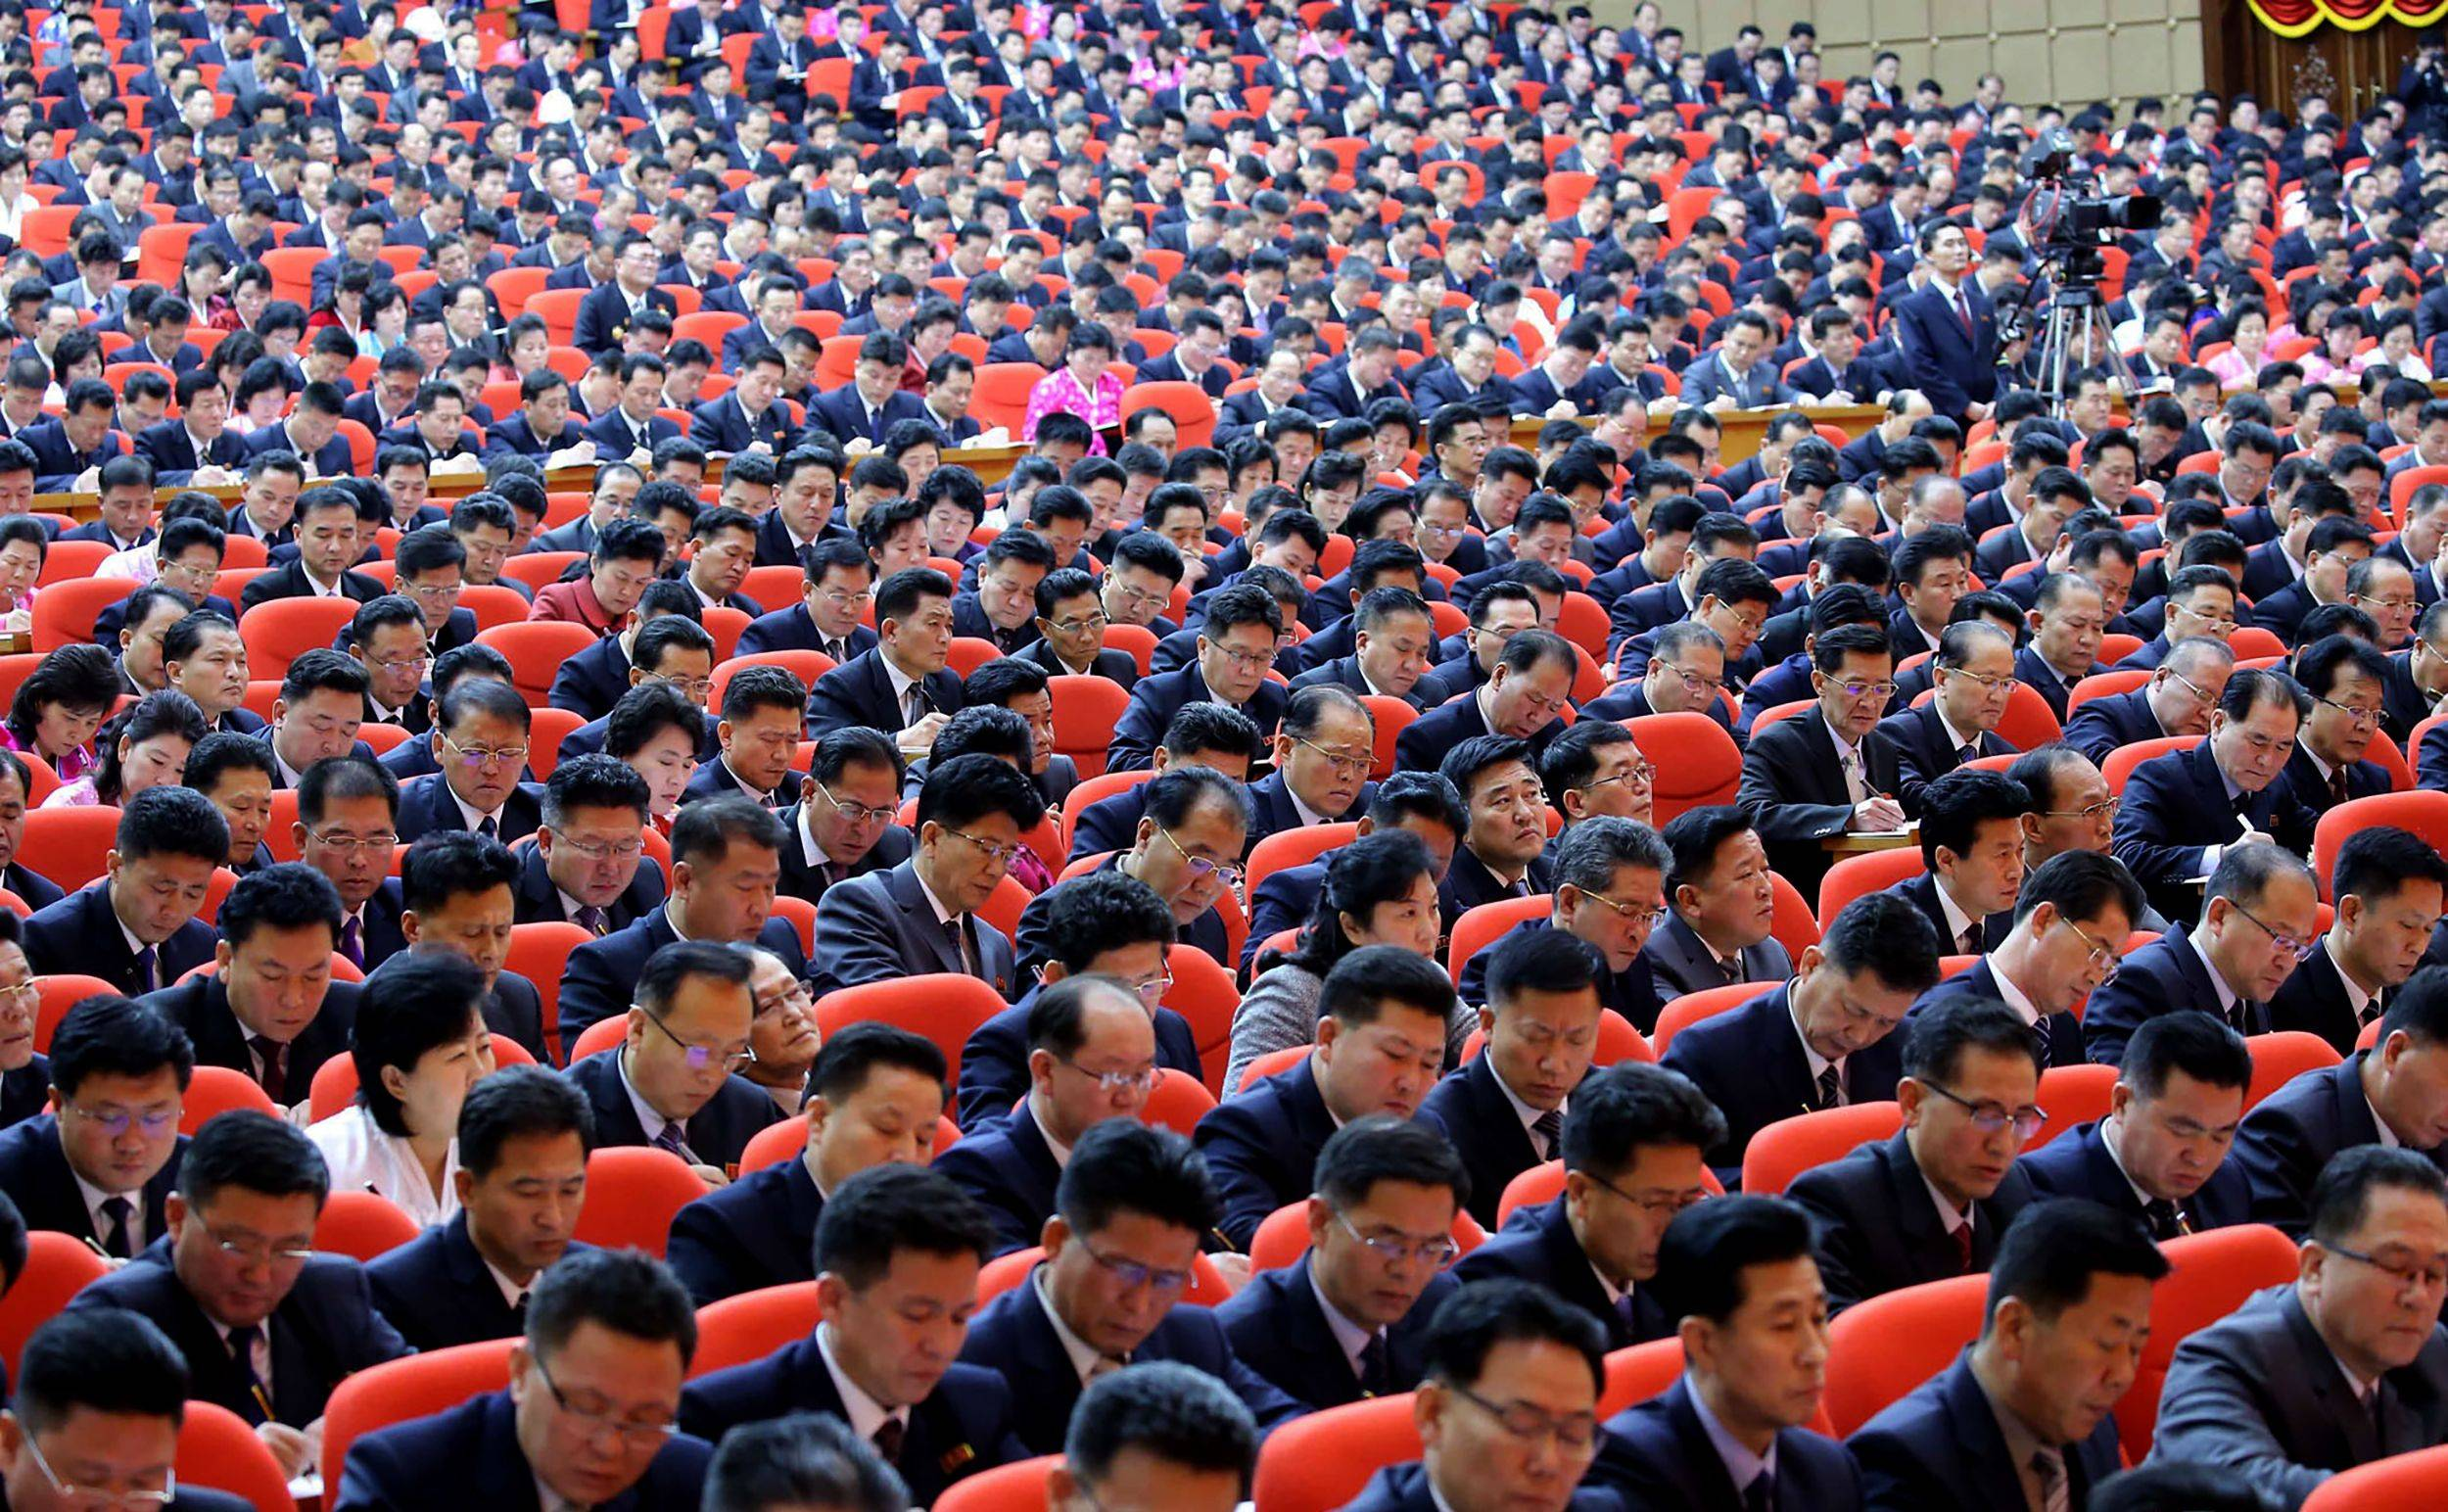 Attendees take notes during a ruling Workers' Party of Korea Congress in Pyongyang on Saturday. | KCNA / KNS / VIA AFP-JIJI